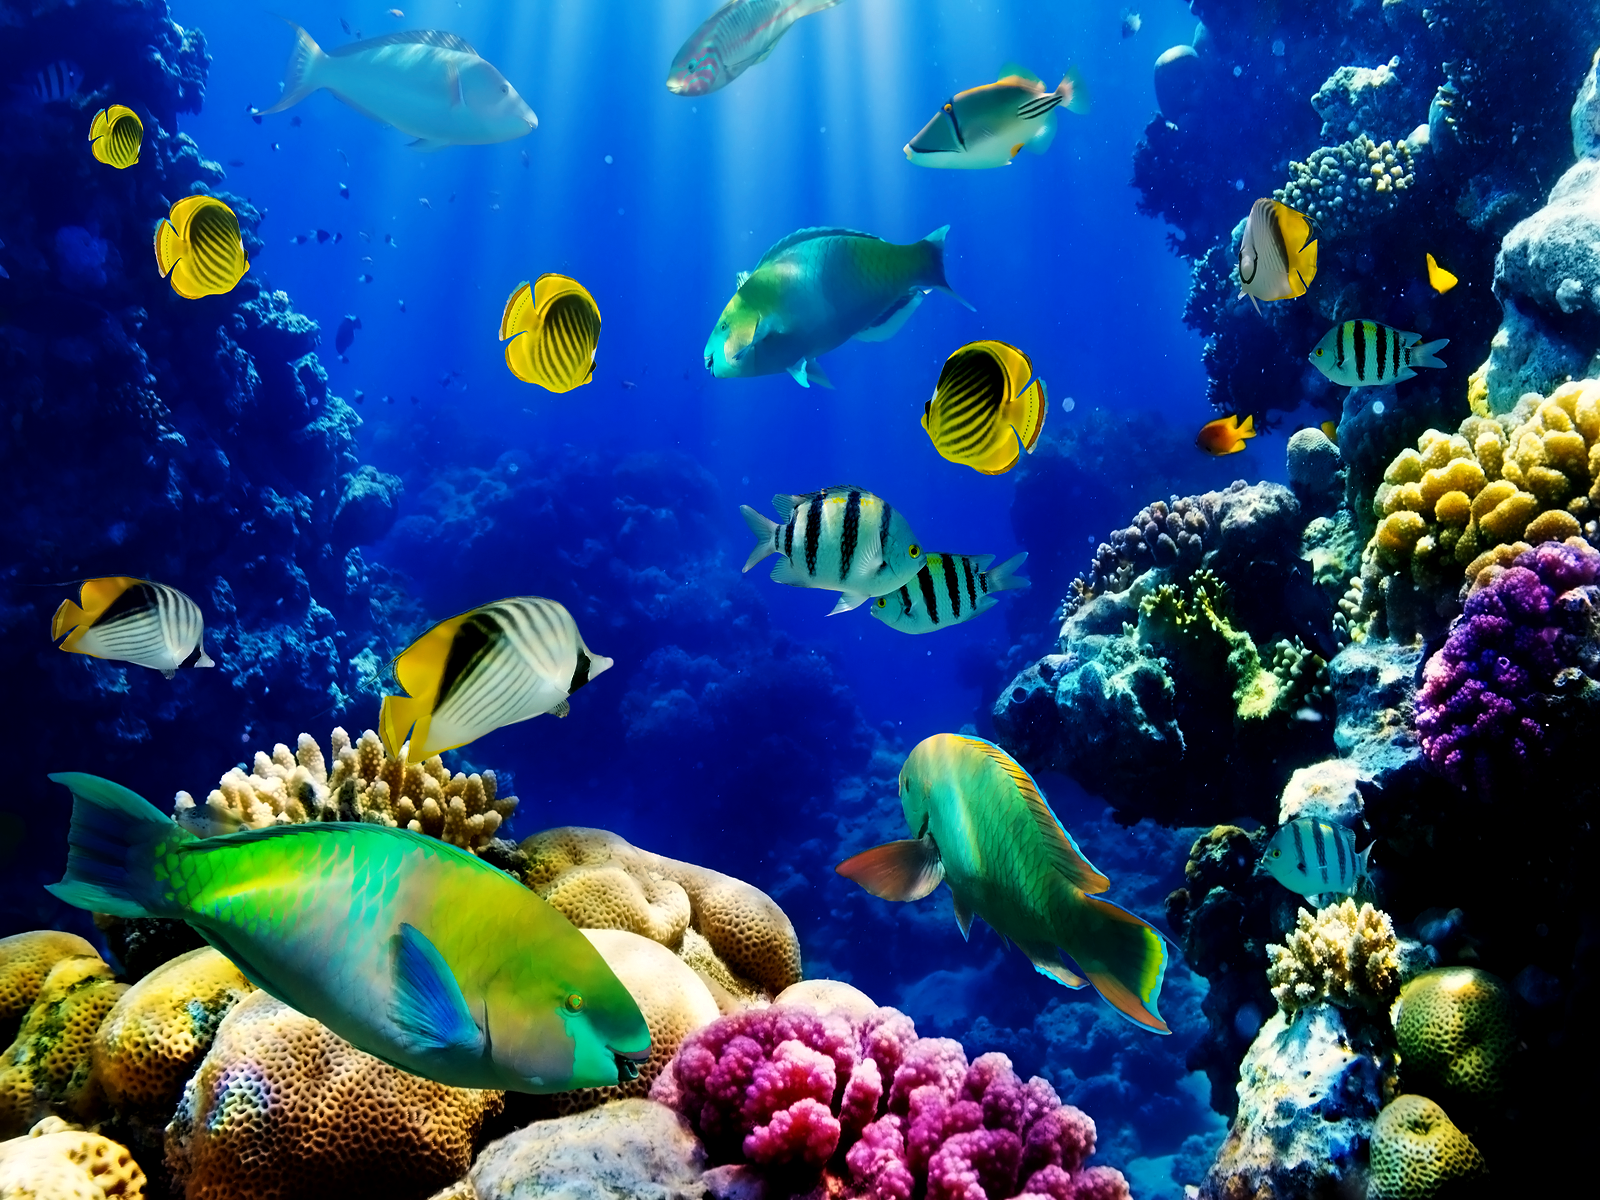 3d Live Fish Wallpaper Fish Tank Live Wallpaper 1600x1200